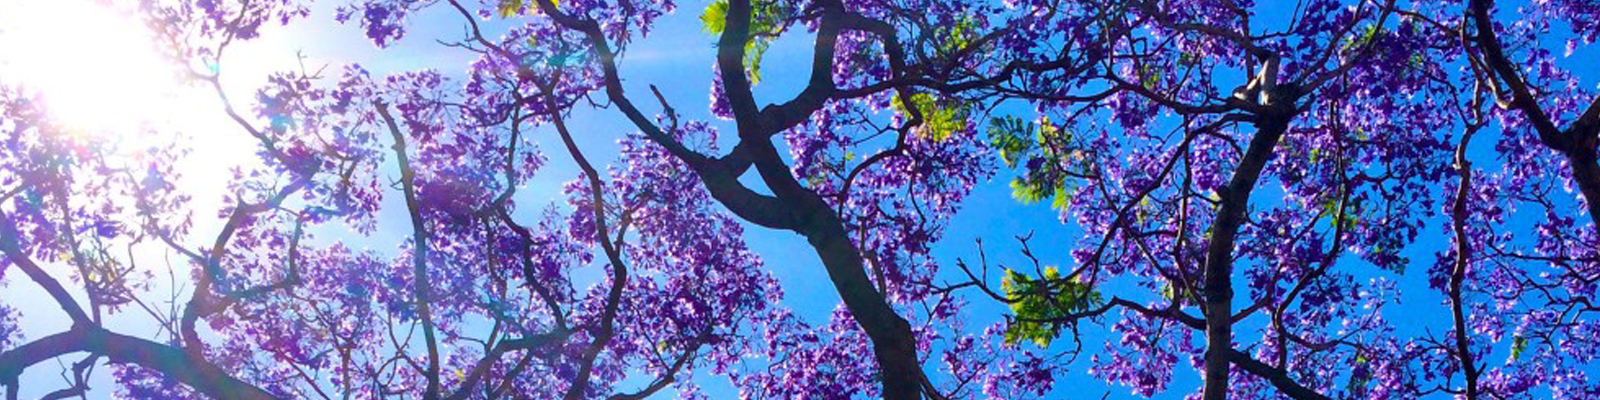 Lessons from my kids #1: Jacarandas are enough